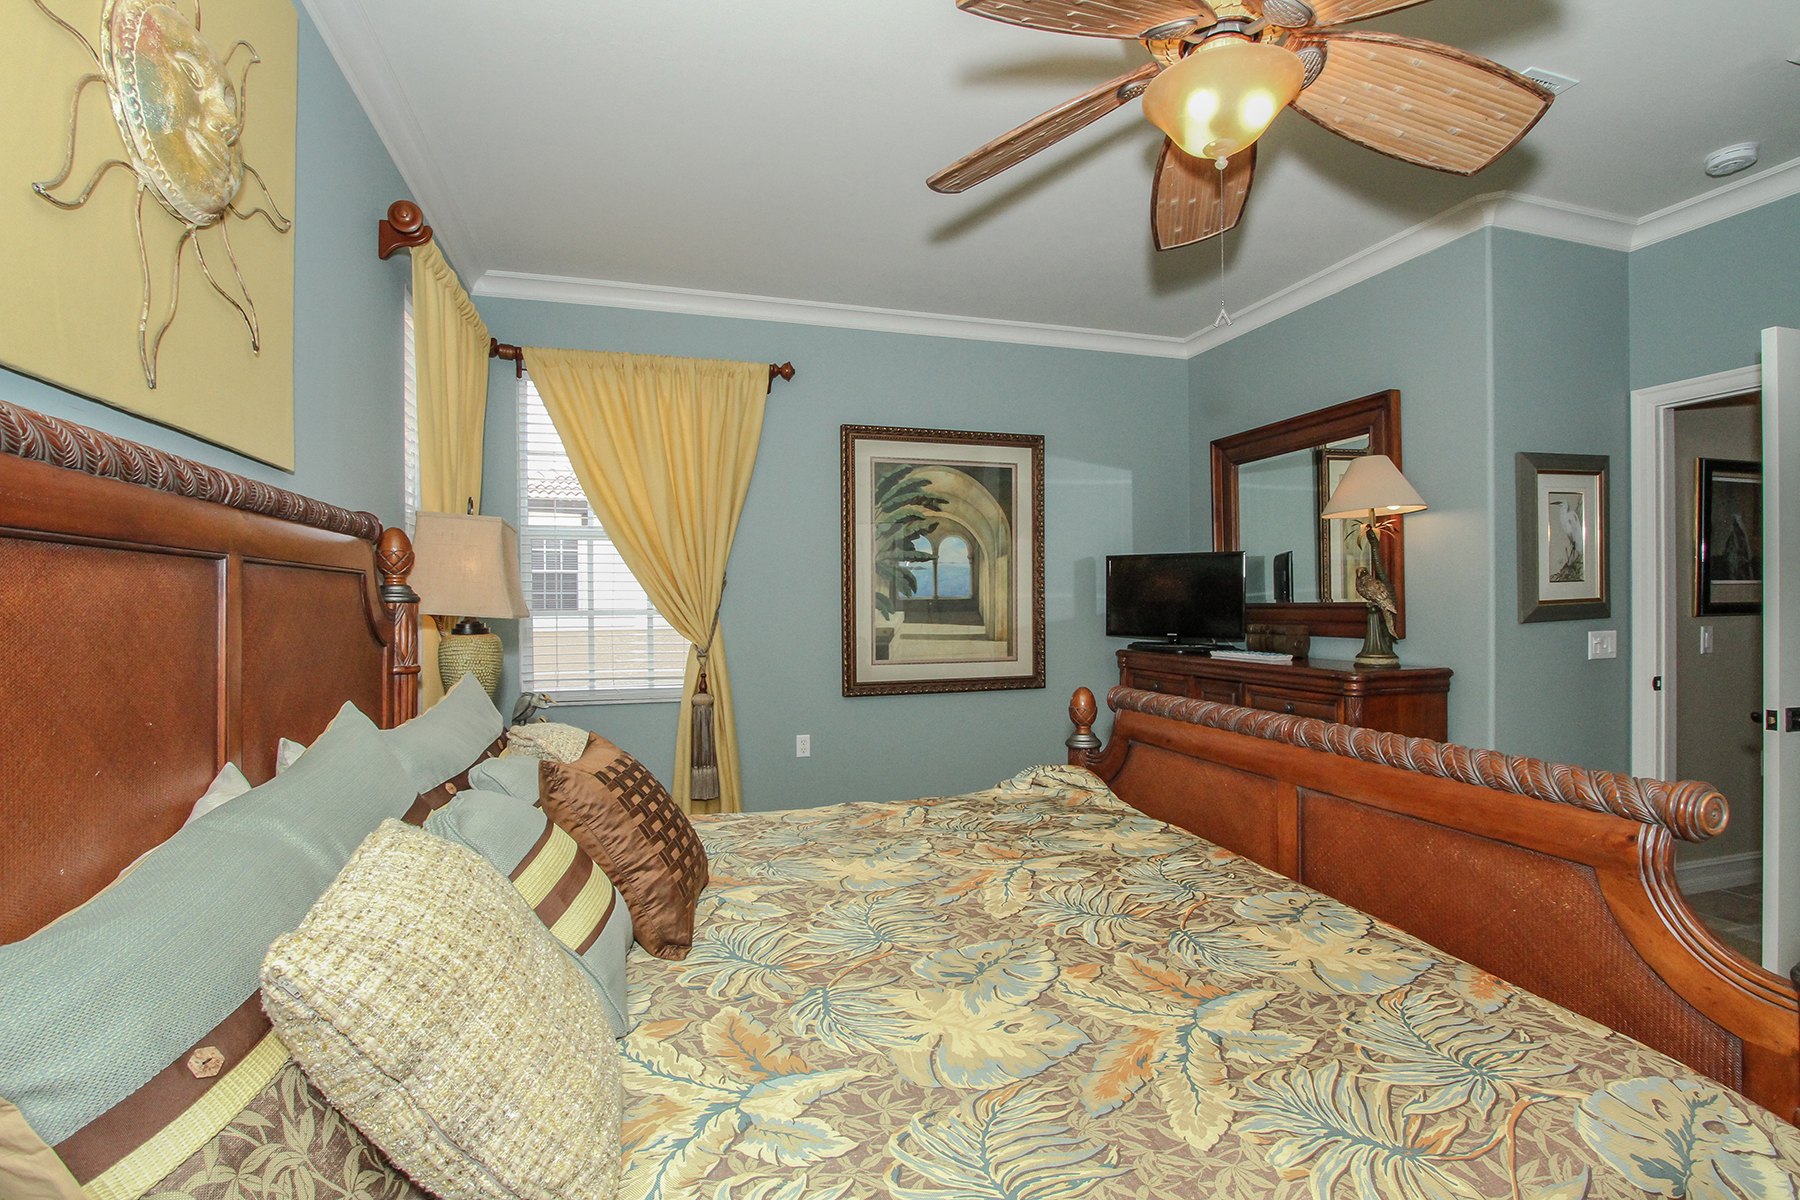 Additional photo for property listing at PELICAN SOUND - PALMETTO DUNES 21820 Palmetto Dunes Dr , 201, Estero, Florida 33928 United States